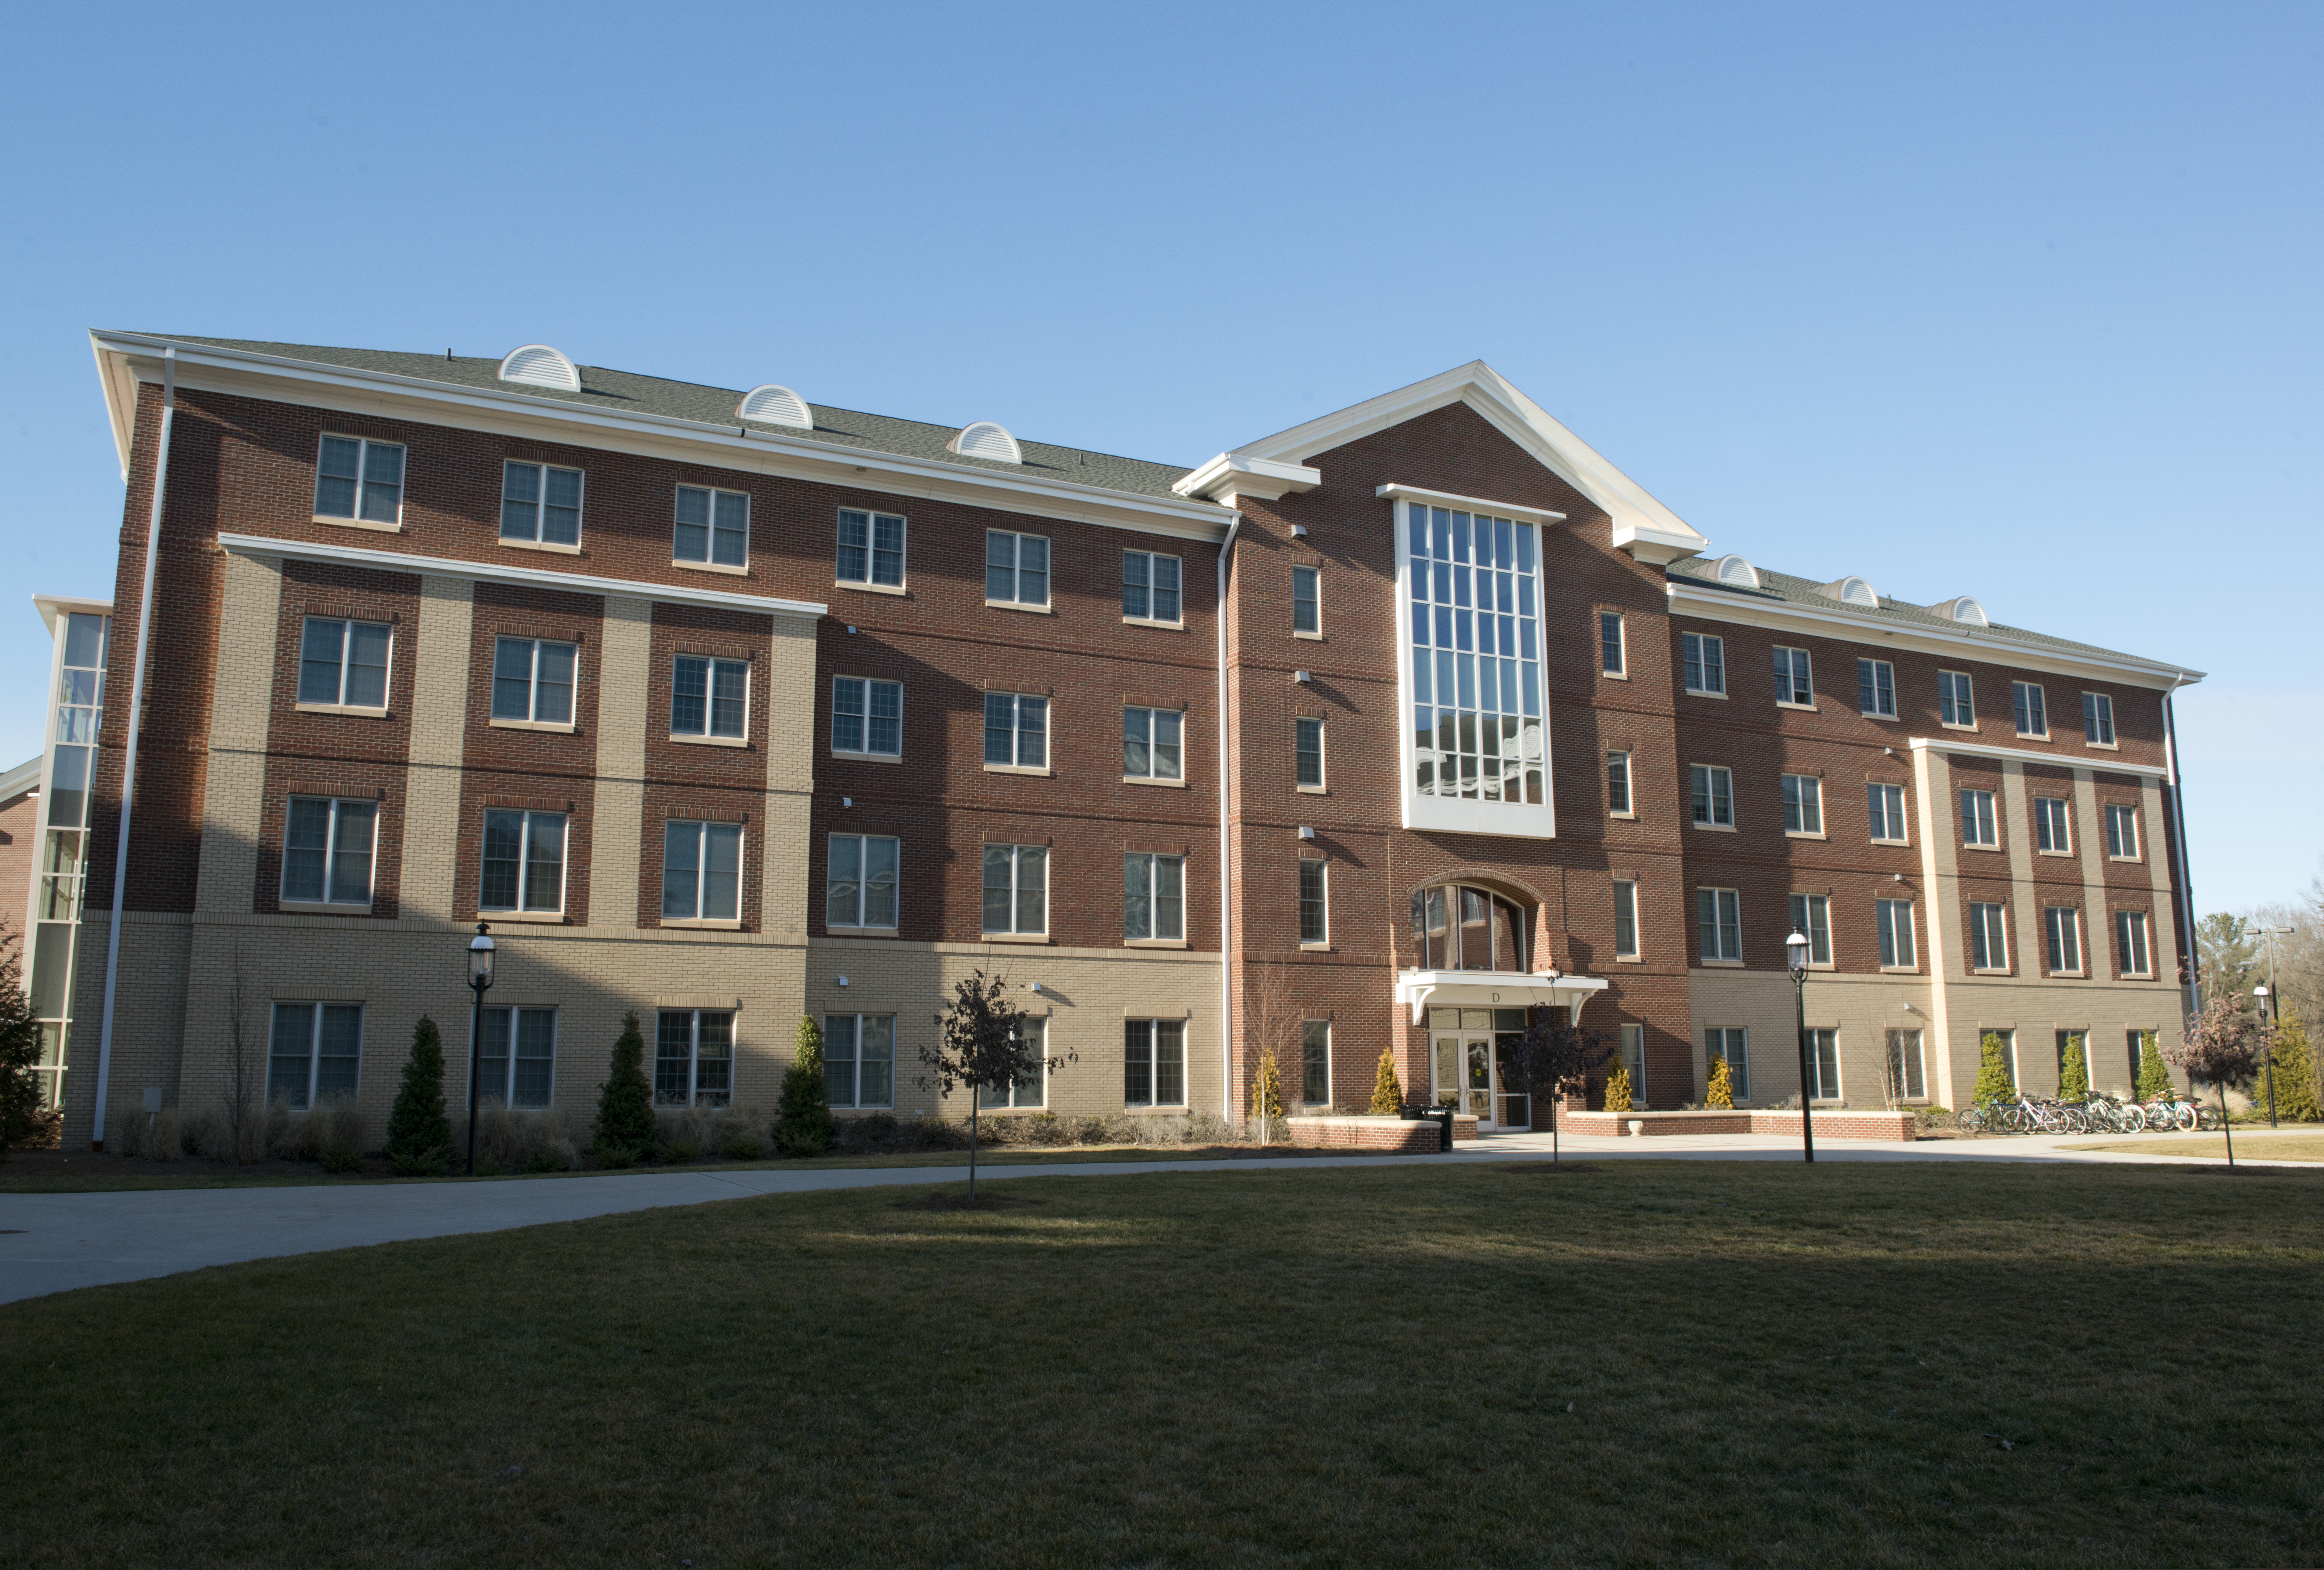 Elon university 25 leed buildings and counting us green elon university 25 leed buildings and counting xflitez Image collections